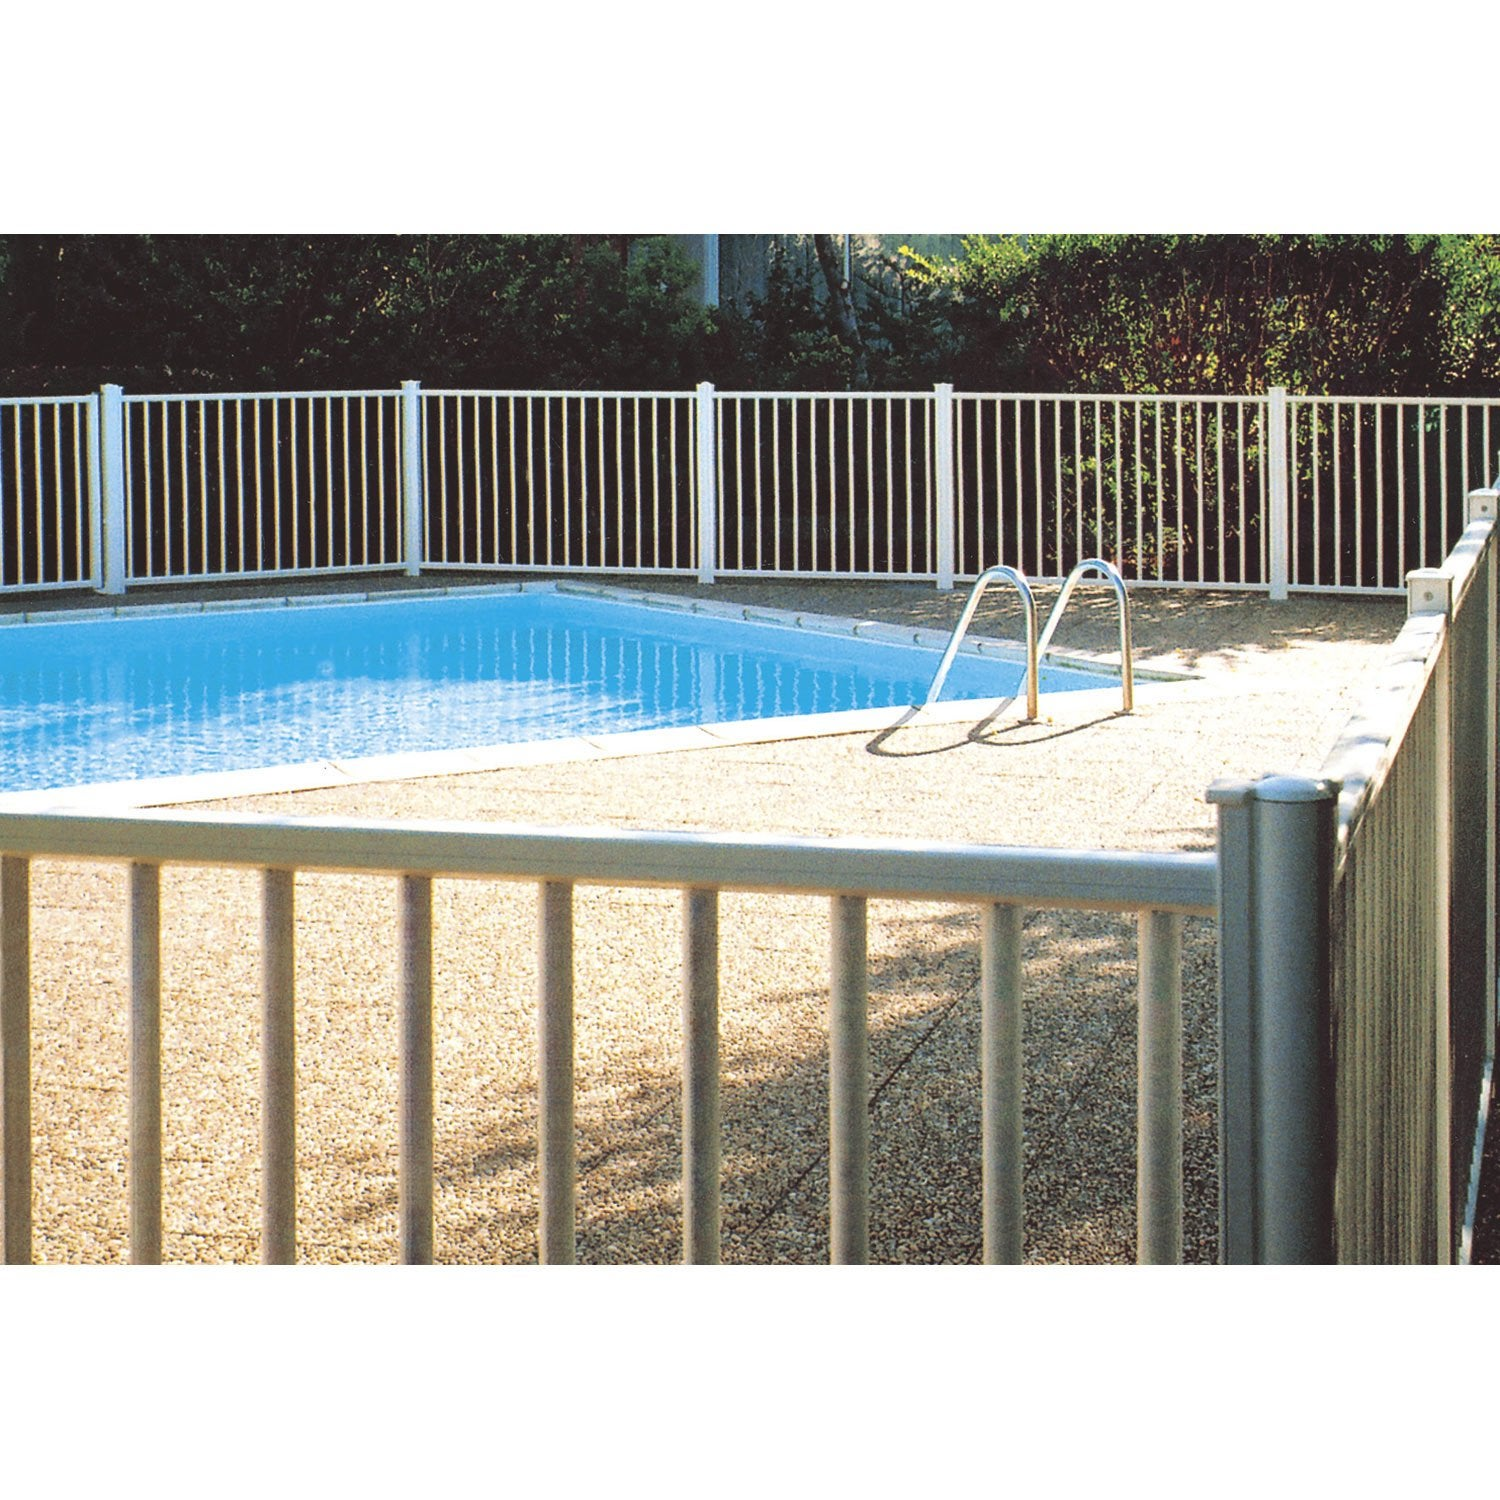 Barri re pour piscine aluminium issambres blanc 9010 h for Cloture aluminium pour piscine